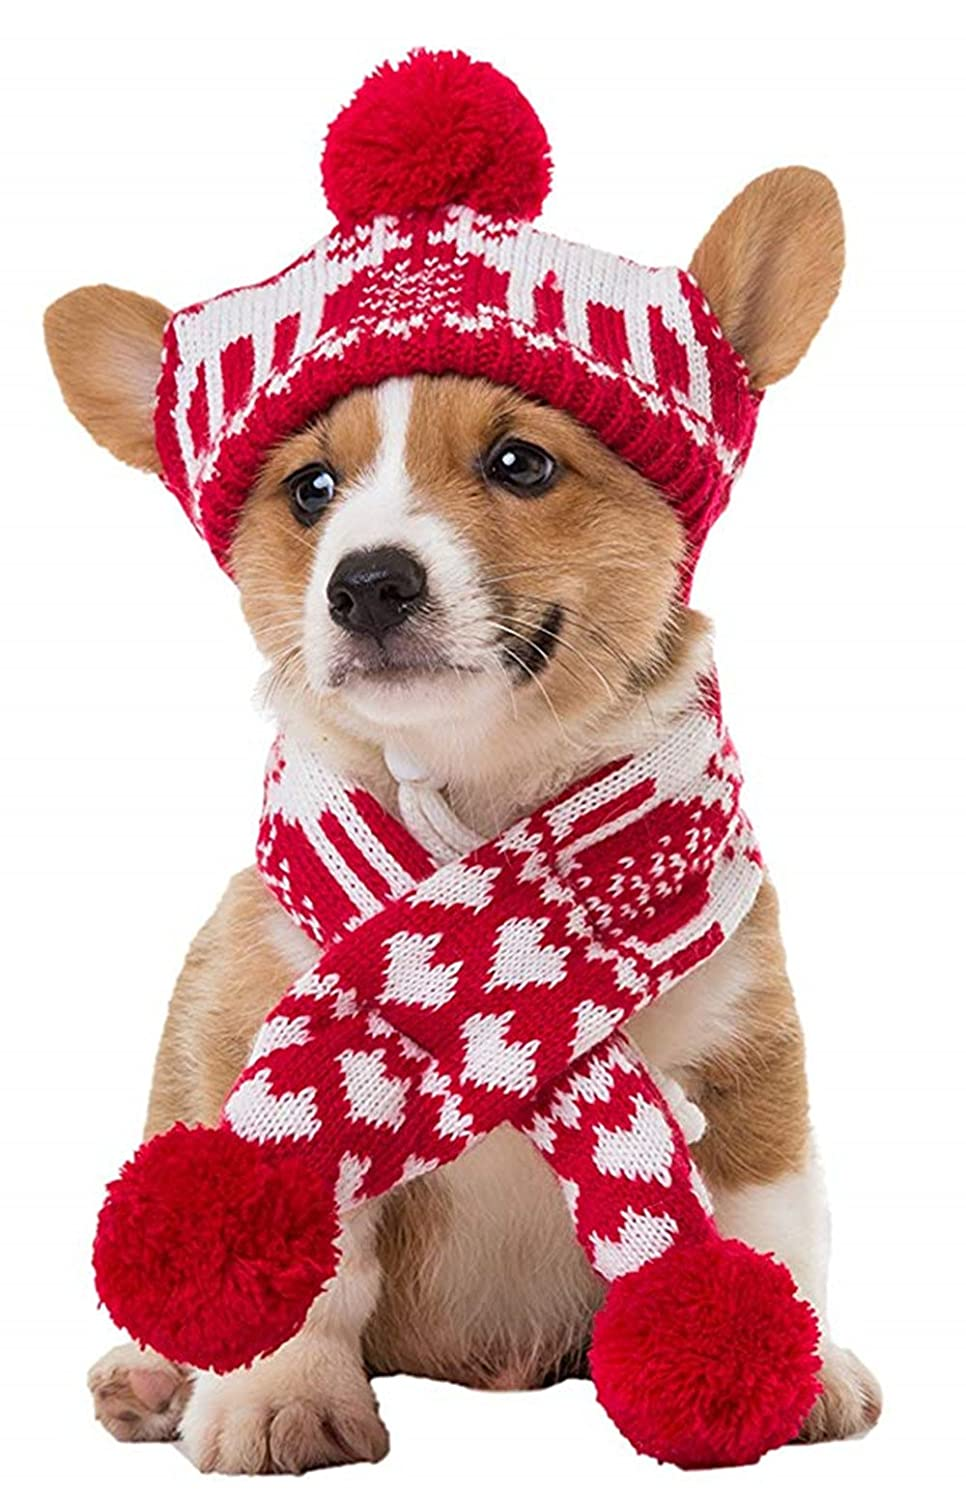 Knit Christmas Reindeer Scarf and Hat Set for Pet